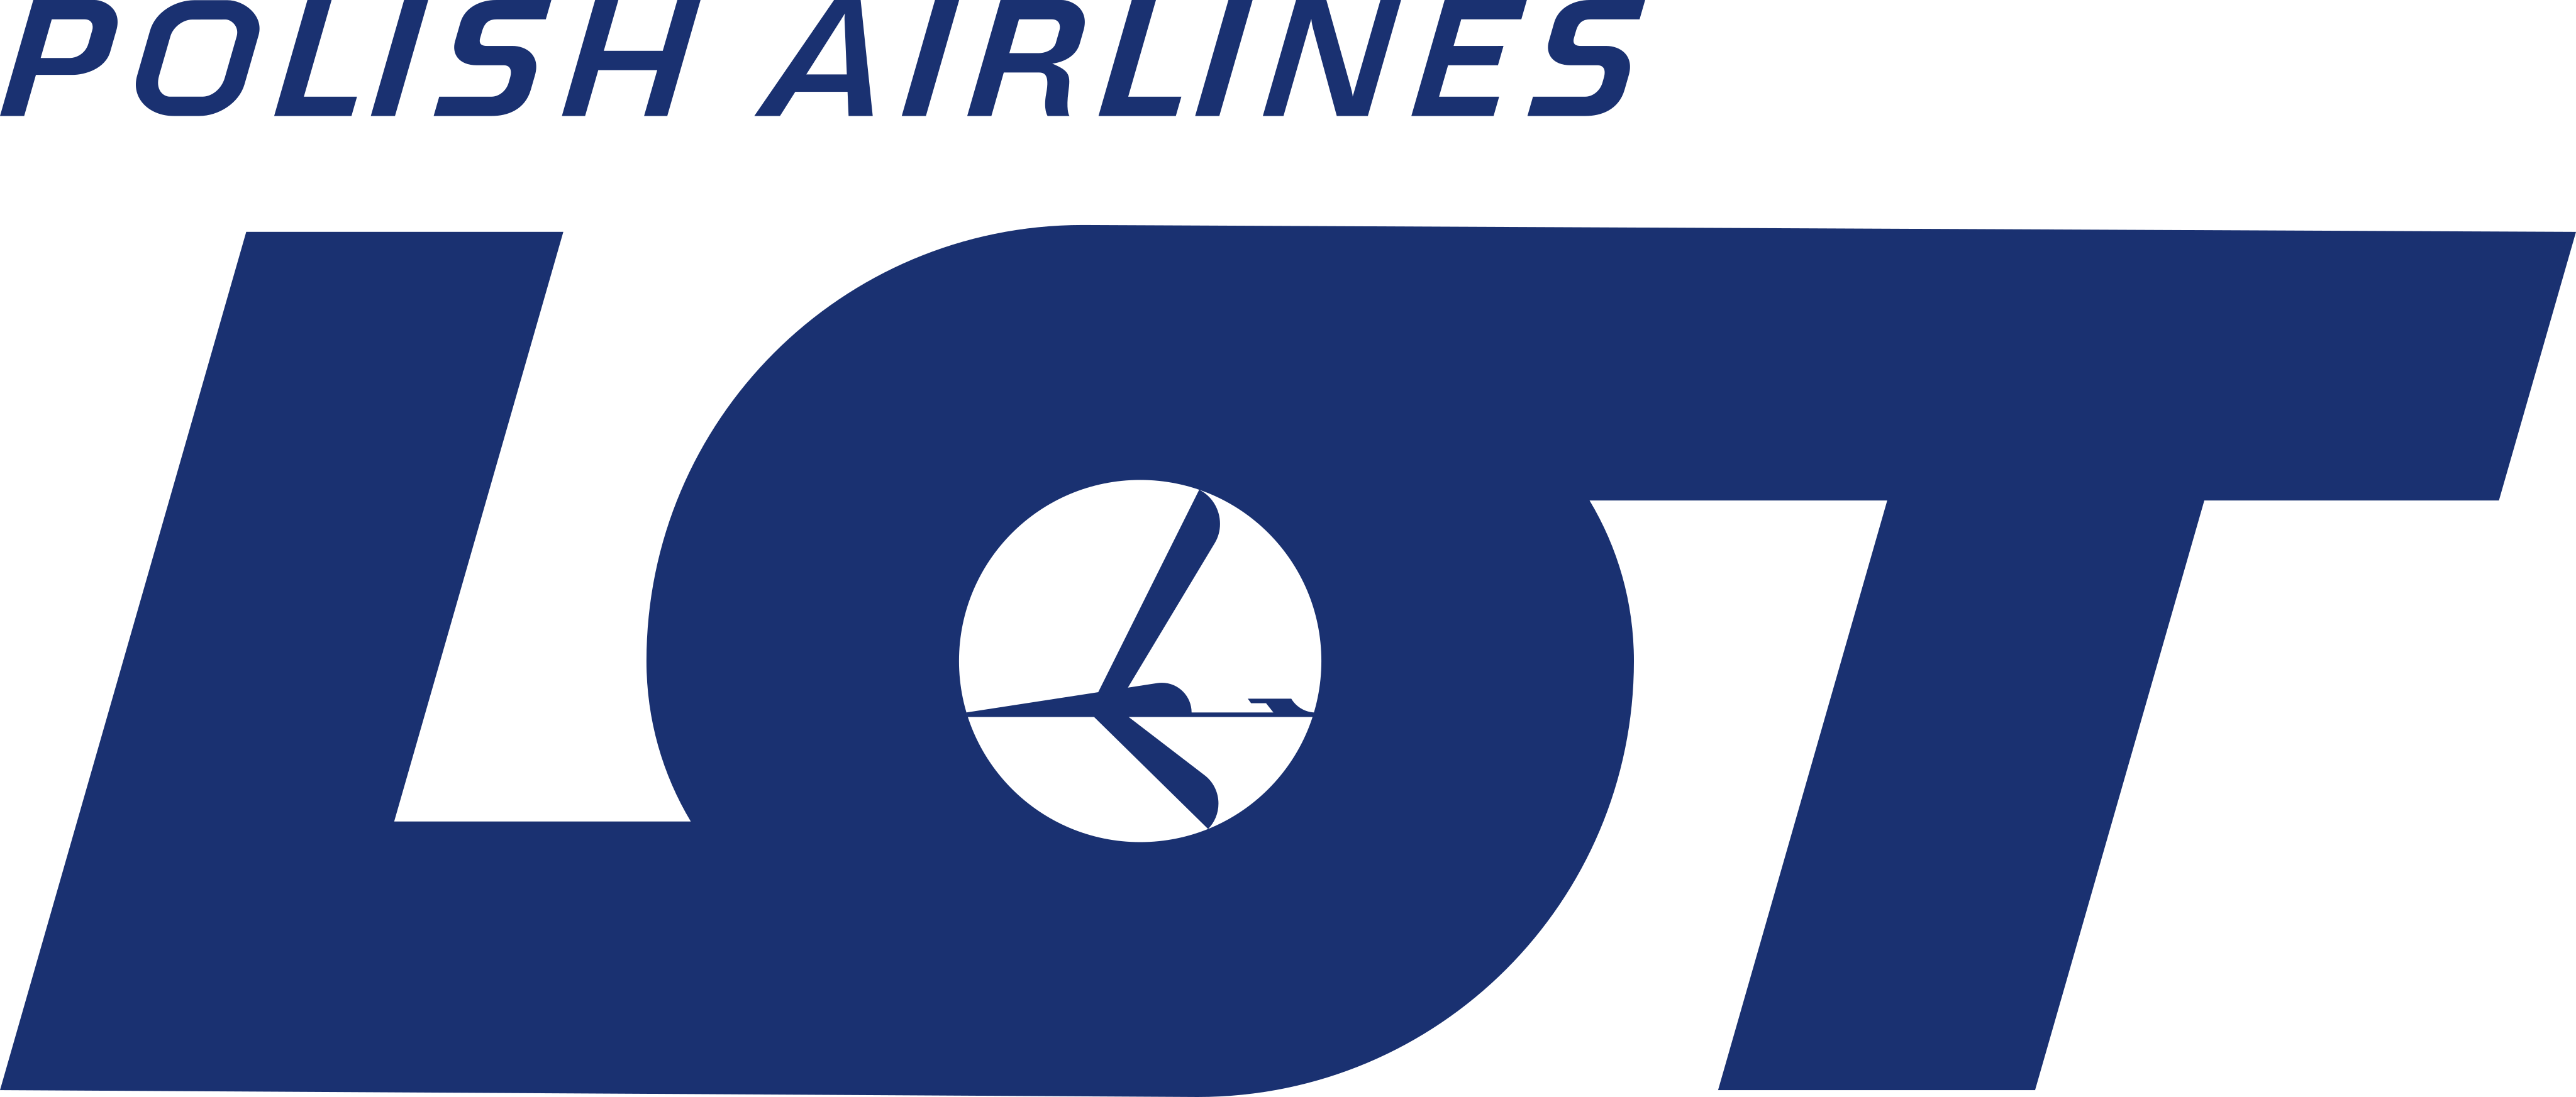 Lot Polish Airlines Logo Png And Vector Logo Download